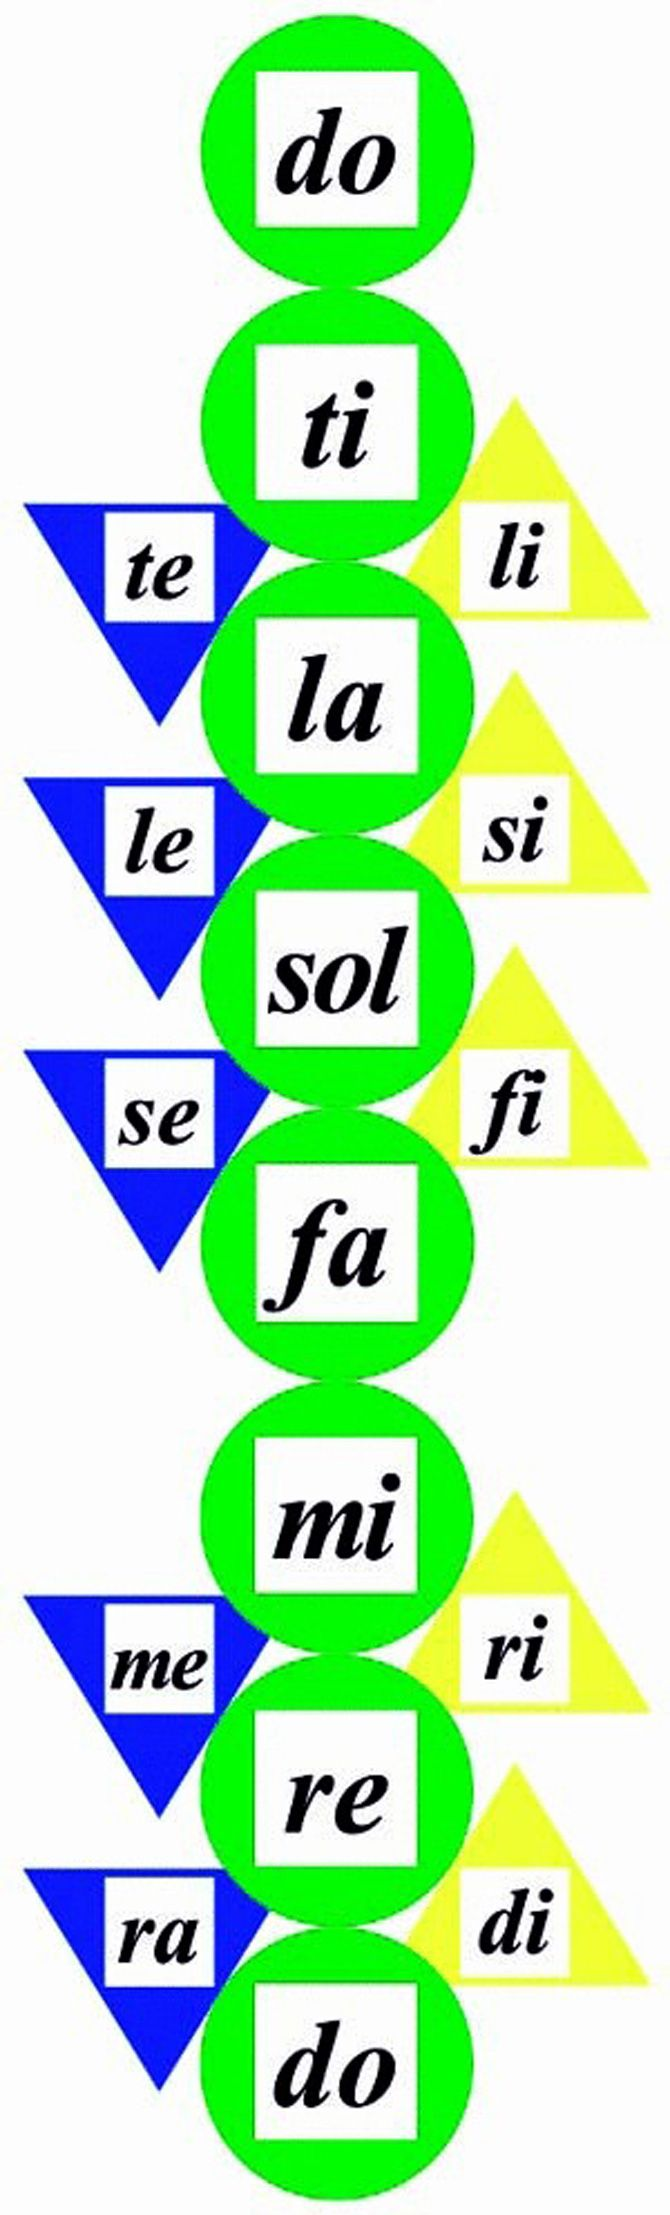 "SOLFEGE CIRCLES - Solfege cards with adhesive magnets to attach on the back --perfect for flexible use on any magnetic surface, such as a white board. Includes all syllables shown plus variants for sol (so and sa)and la (lo), as well as flat syllable sets:ta-lo-sa-ma-ra, ta-la-sa-ma-raand to-lo-so-mo-ro. 5.5"" cards of heavy UV-coated stock. Secrets of Sight Singing Success offers lots of helpful suggestions for using Solfege Circles. Set of 32 Cards"